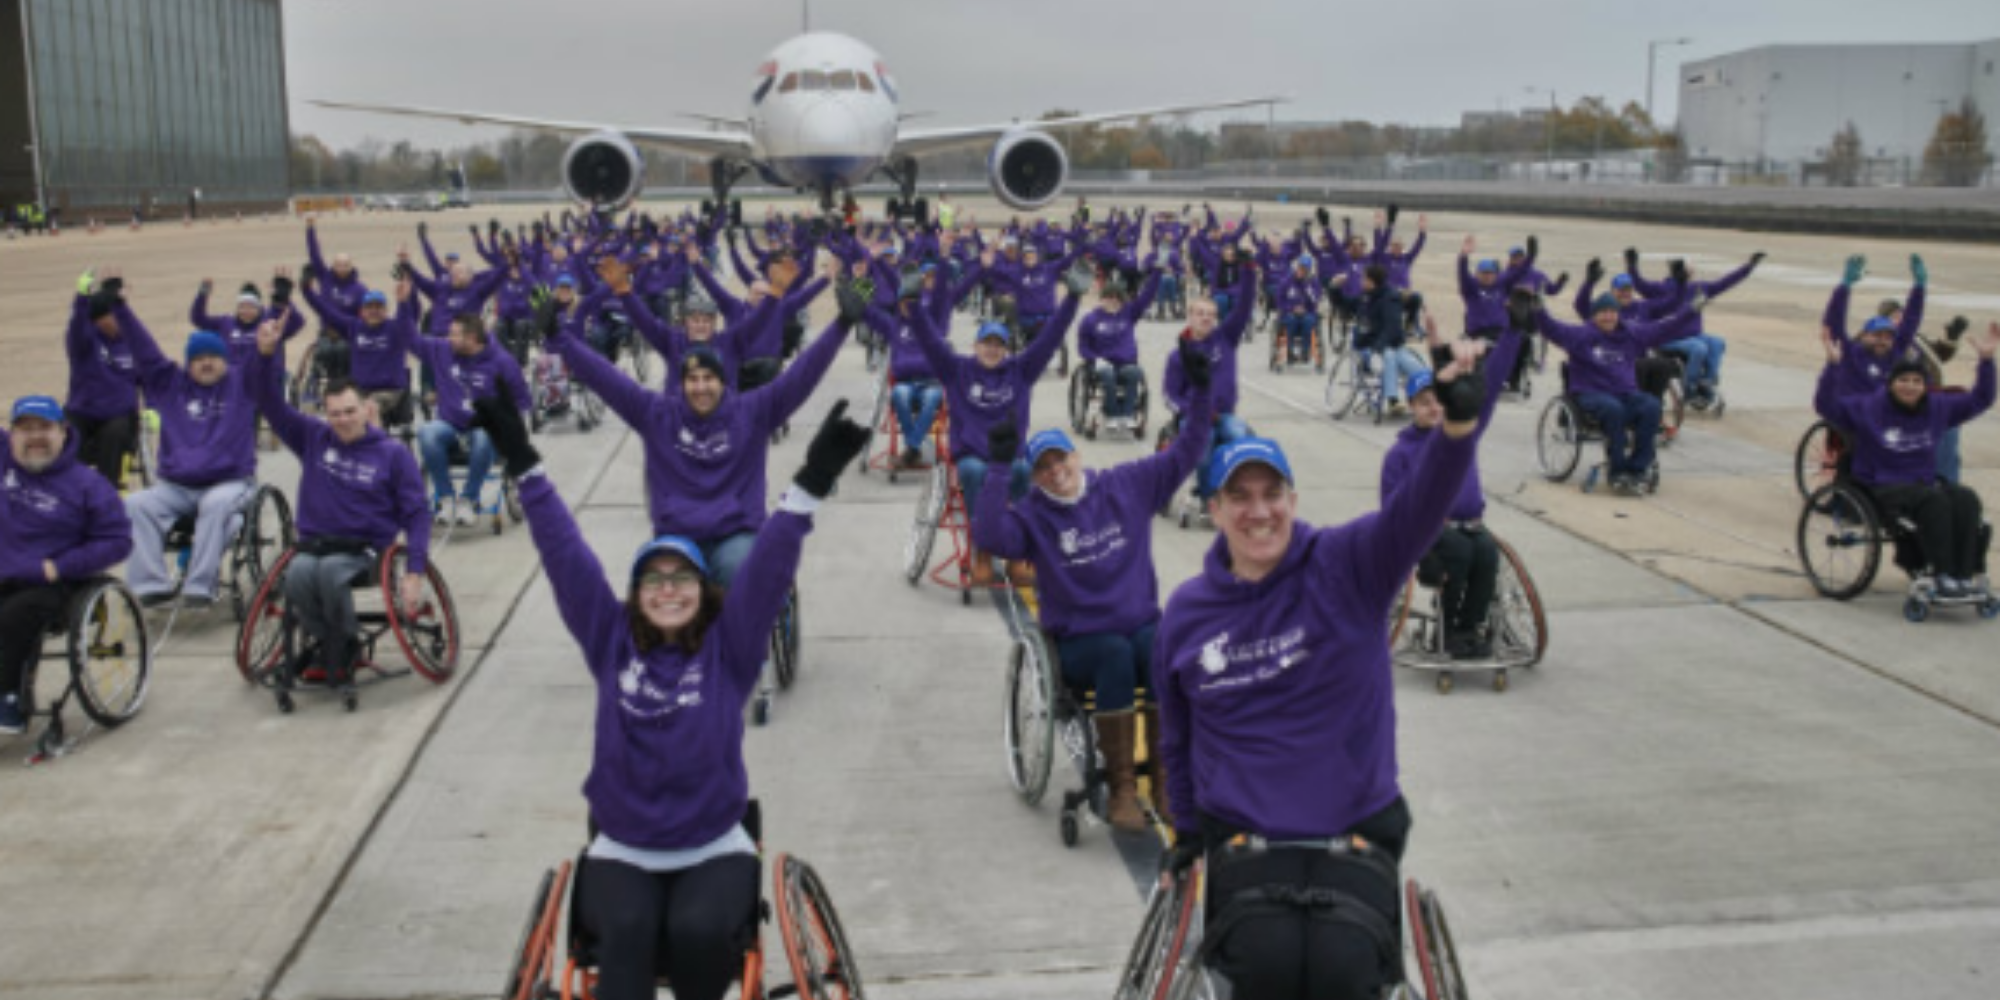 The team on 100 people in wheel chairs who broken the world record for pulling the heaviest plane.